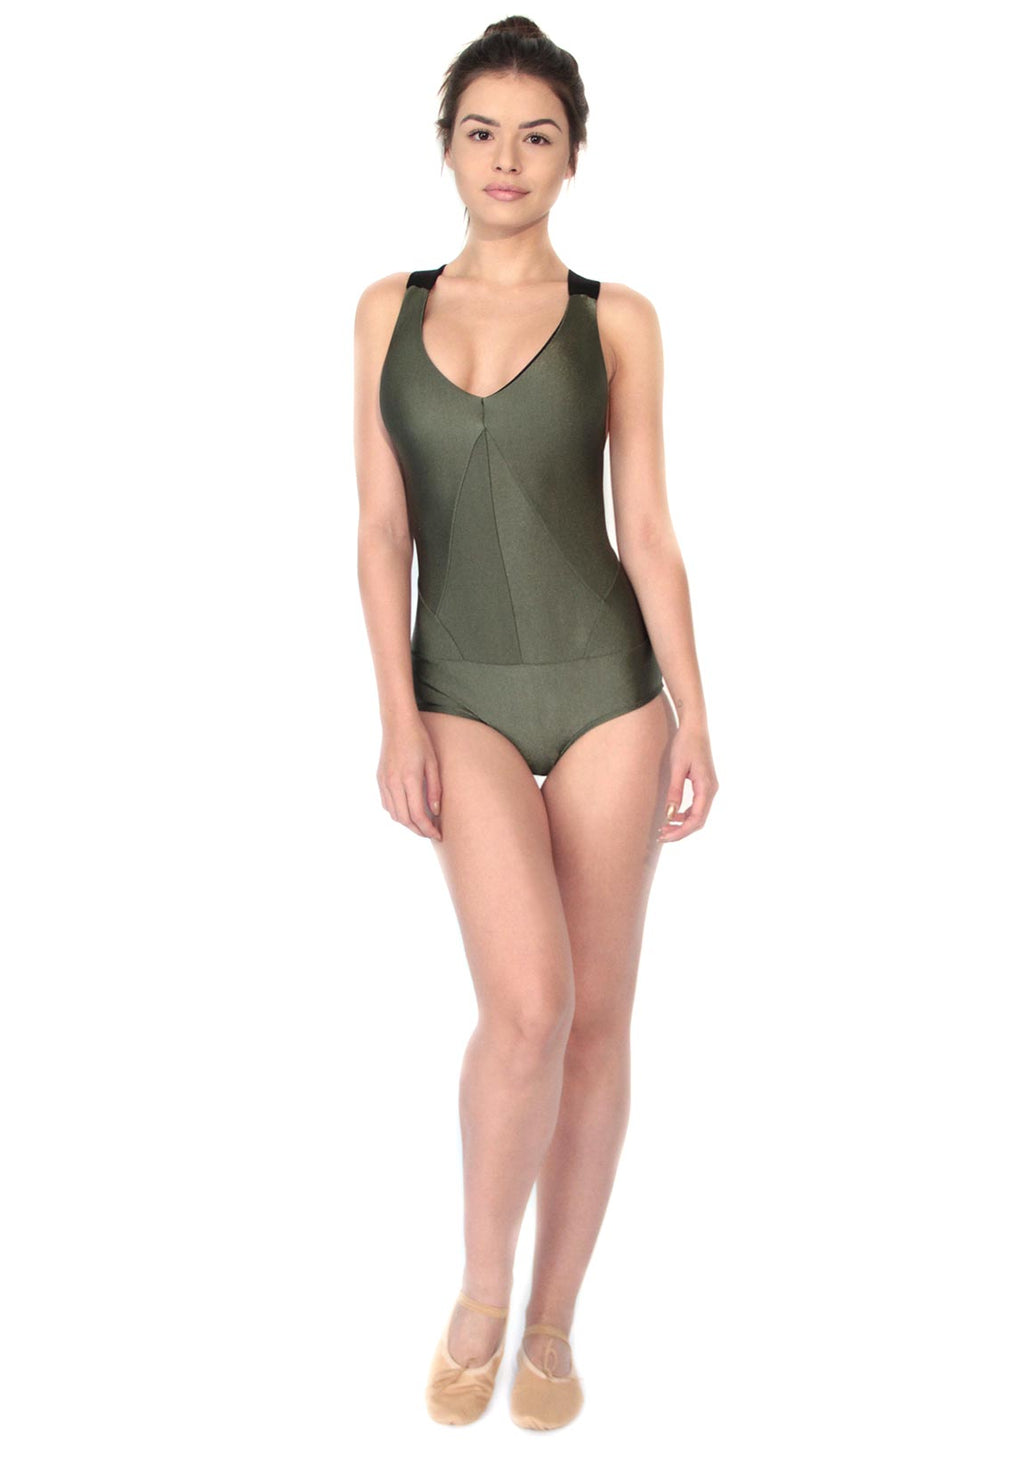 Collant Verde Militar Elle 2Peace2Dance